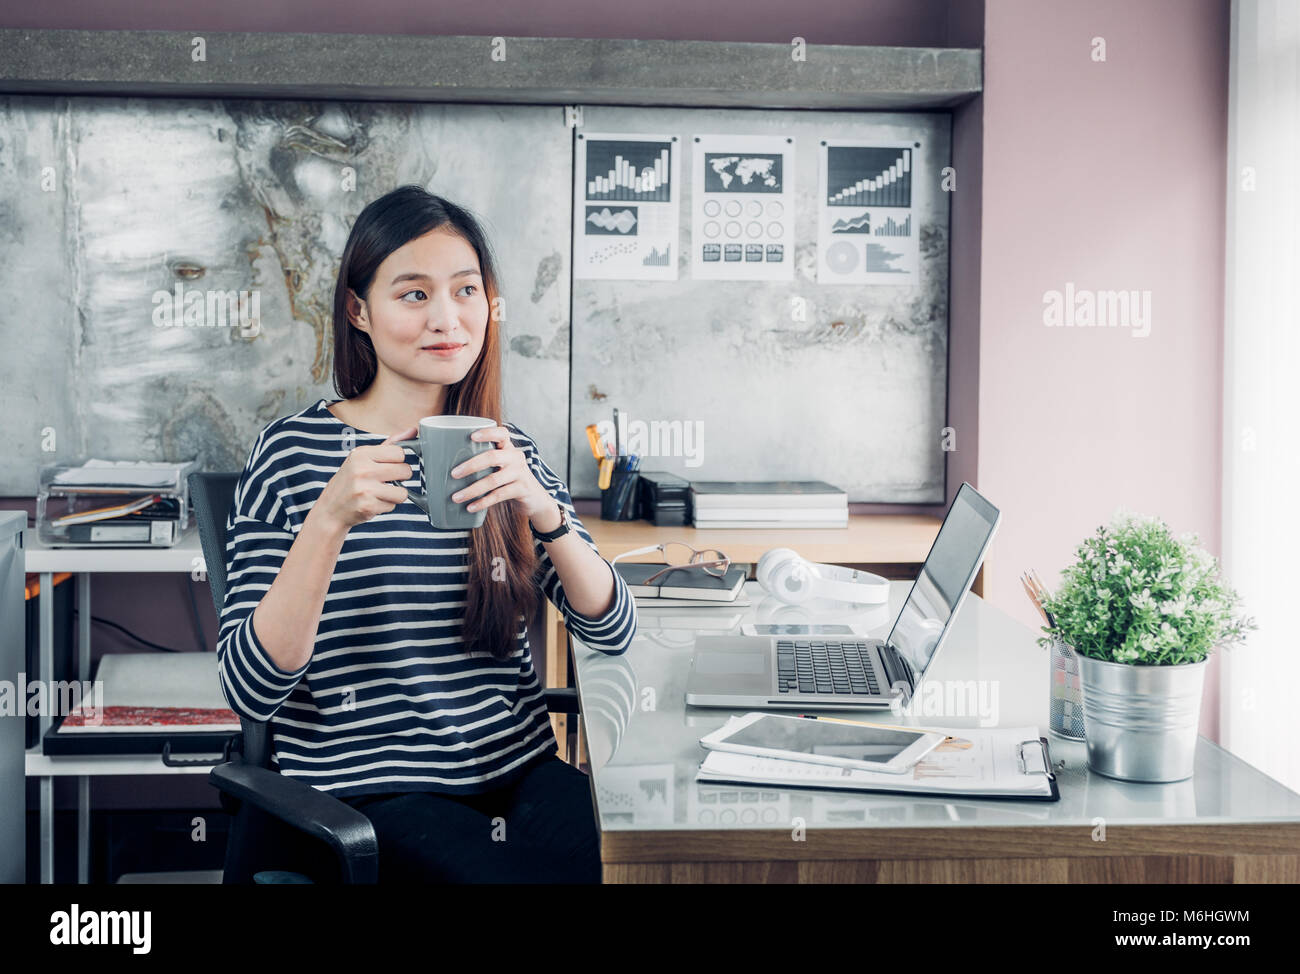 Asian businesswoman take a coffee break after working with smiling face,Happy office life concept,working woman - Stock Image